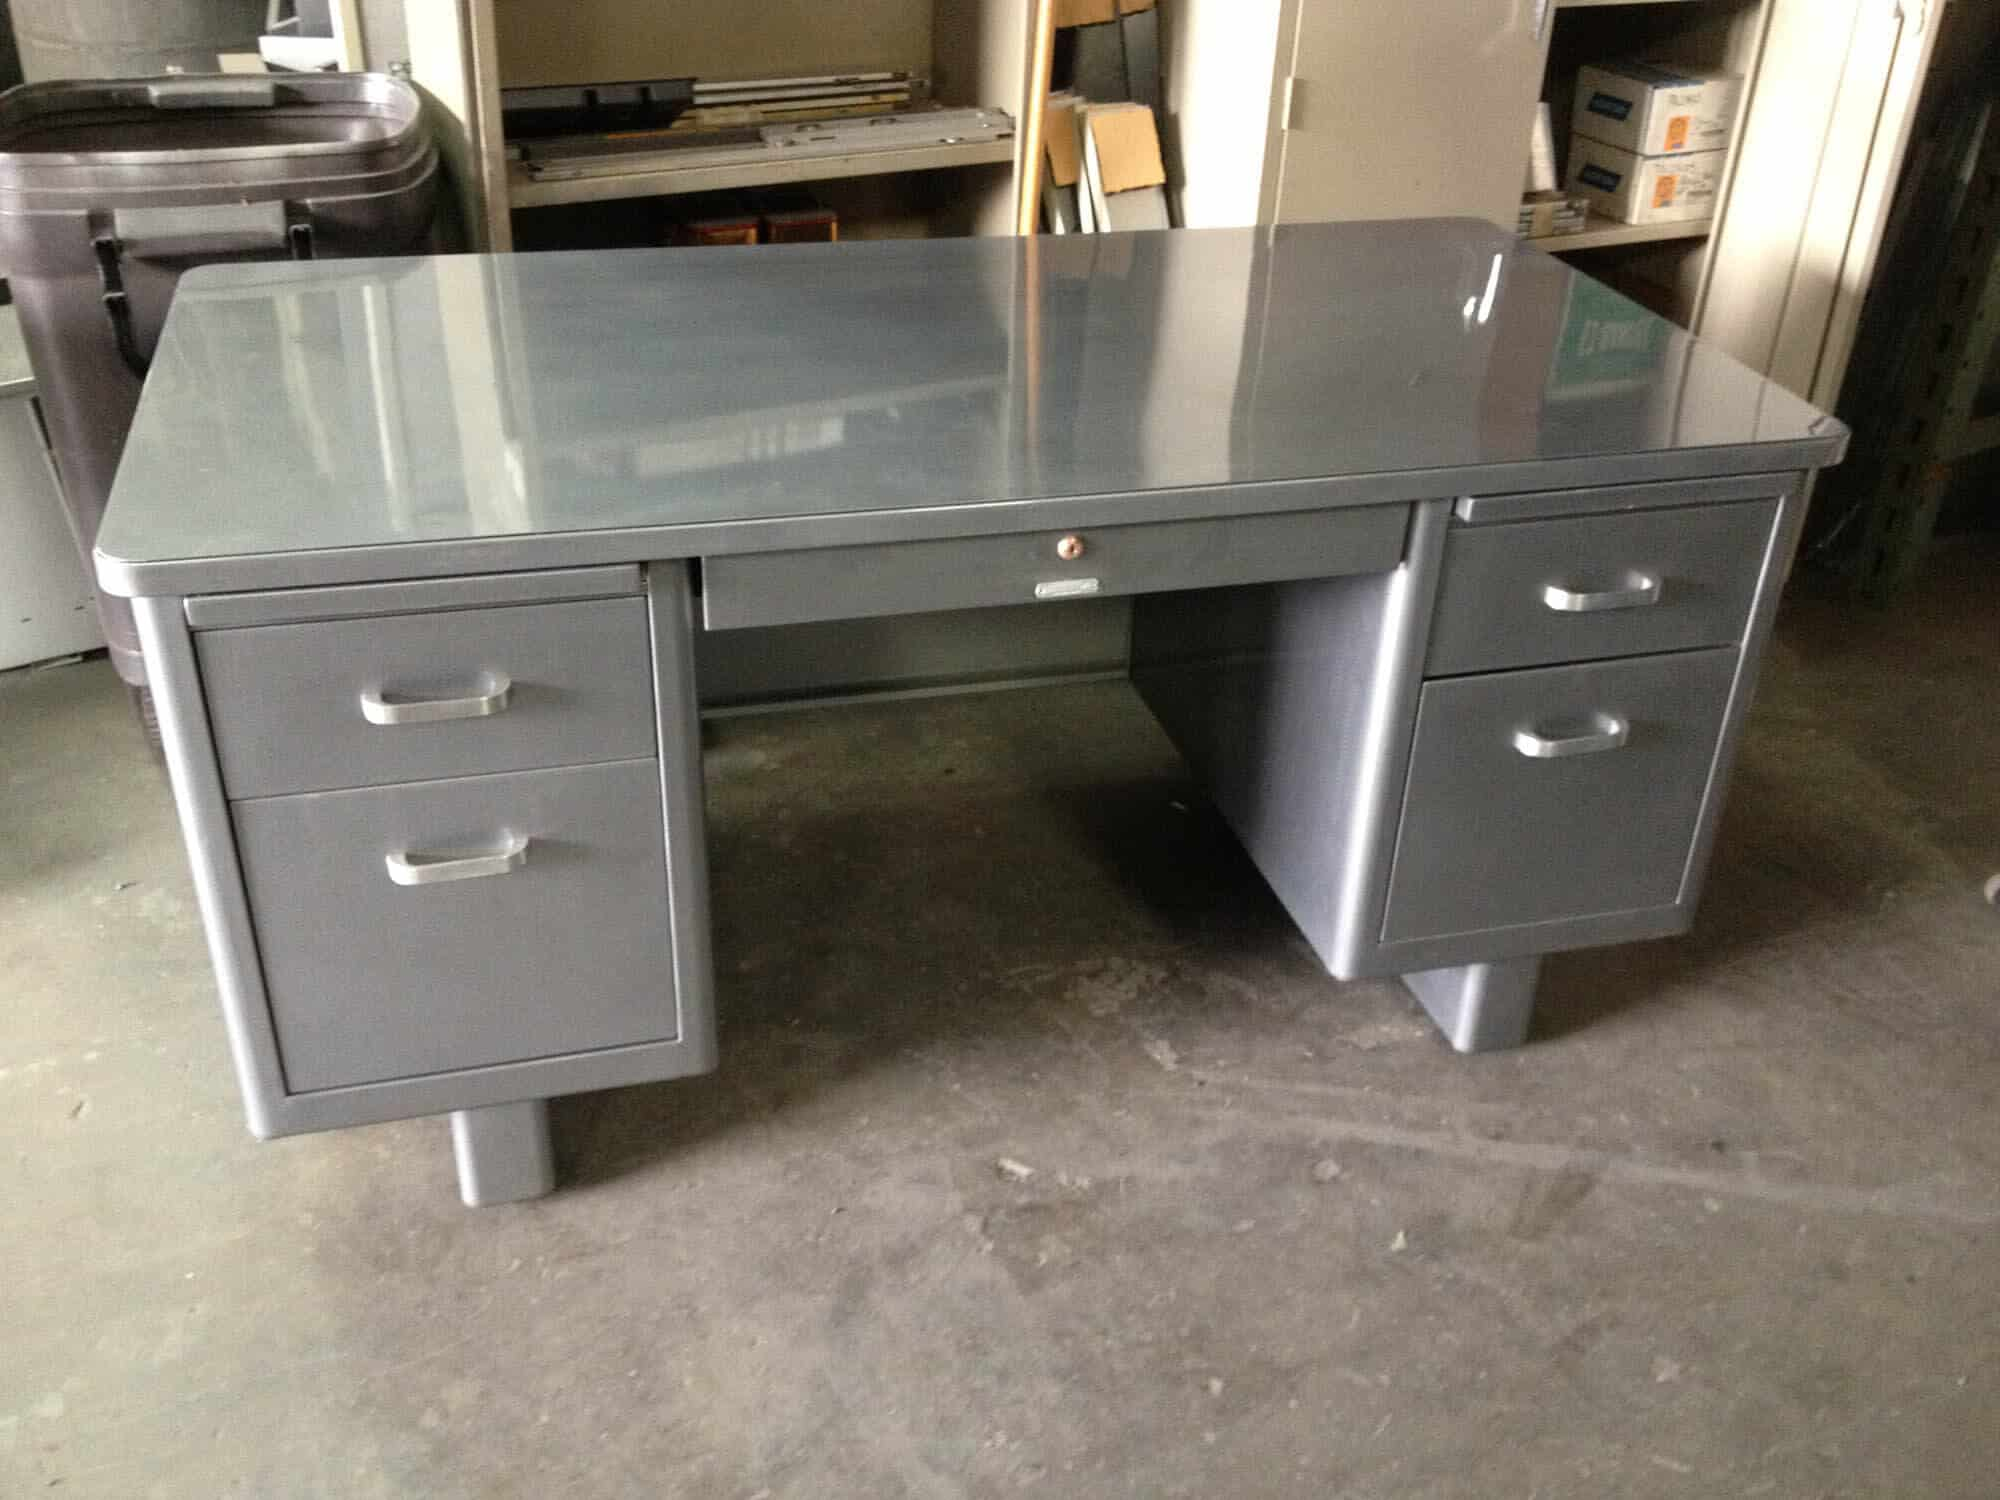 The Industrial Tanker Desk